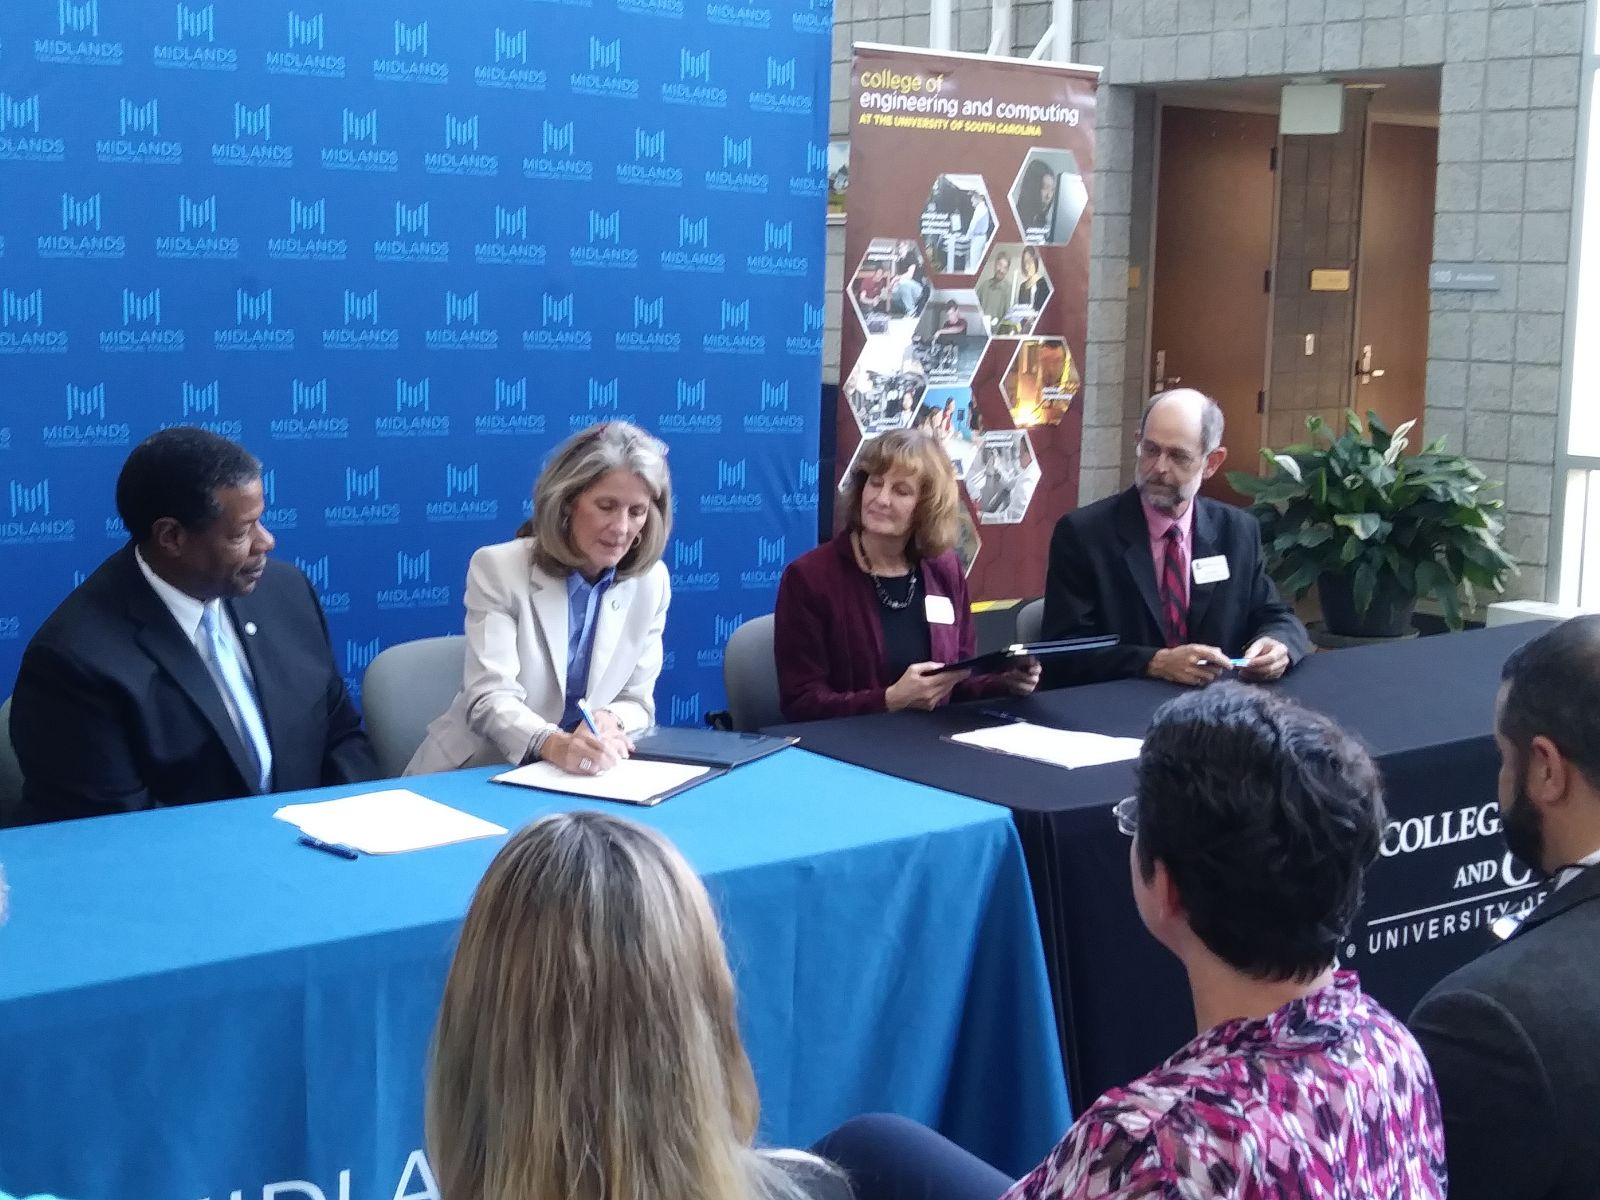 Midlands Technical College President Ronald Rhames (from left) and provost Barrie Kirk; Sandra Kelly, vice provost and dean of undergraduate students at the University of South Carolina; and Jed Lyons, associate dean of academic affairs at USC, sign a transfer agreement. (Photo/Travis Boland)